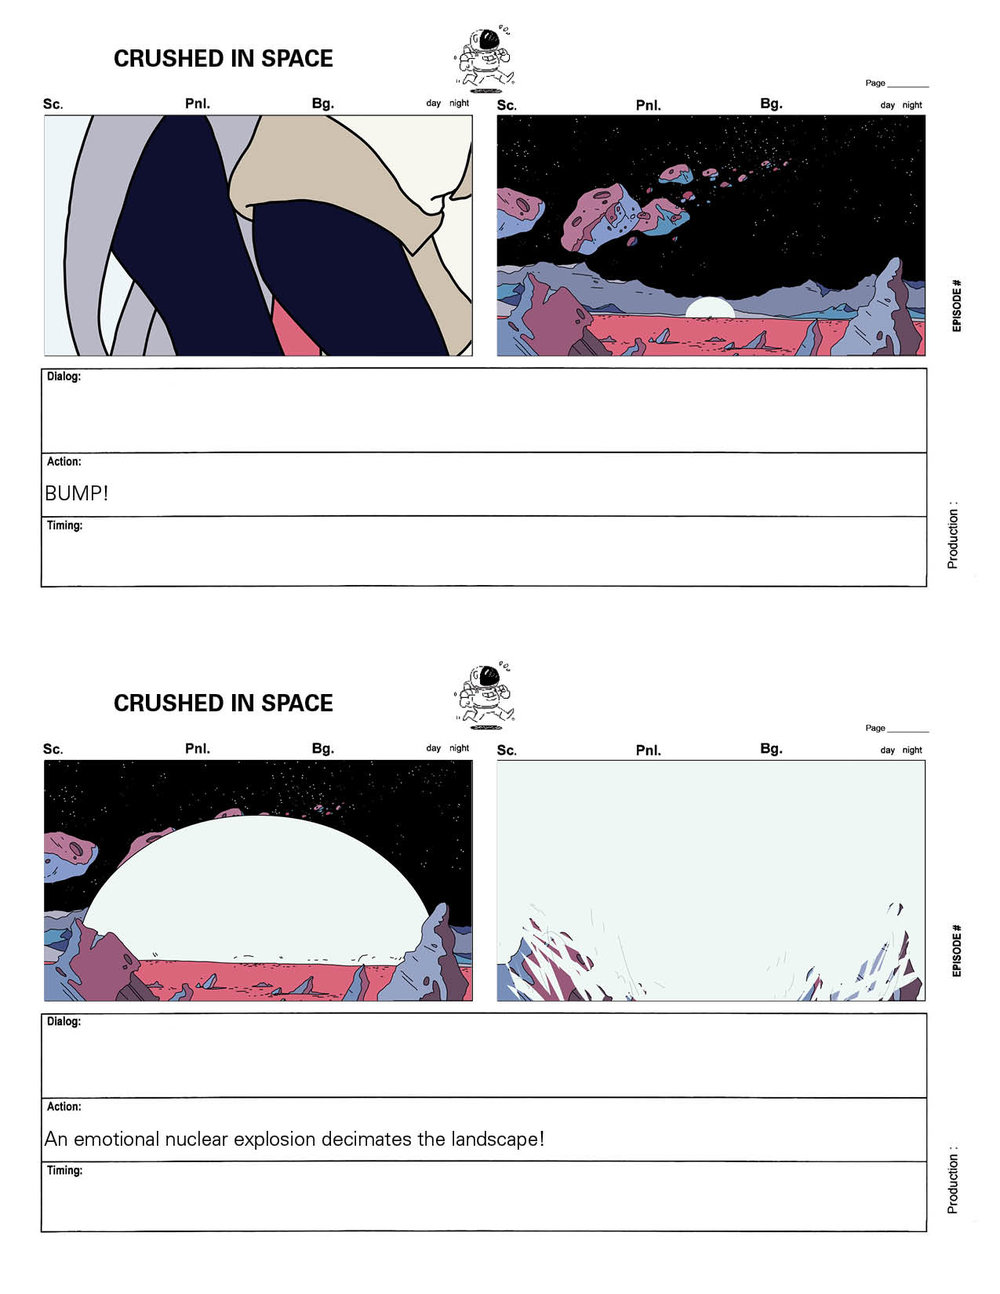 CrushedInSpace_Storyboard27.jpg